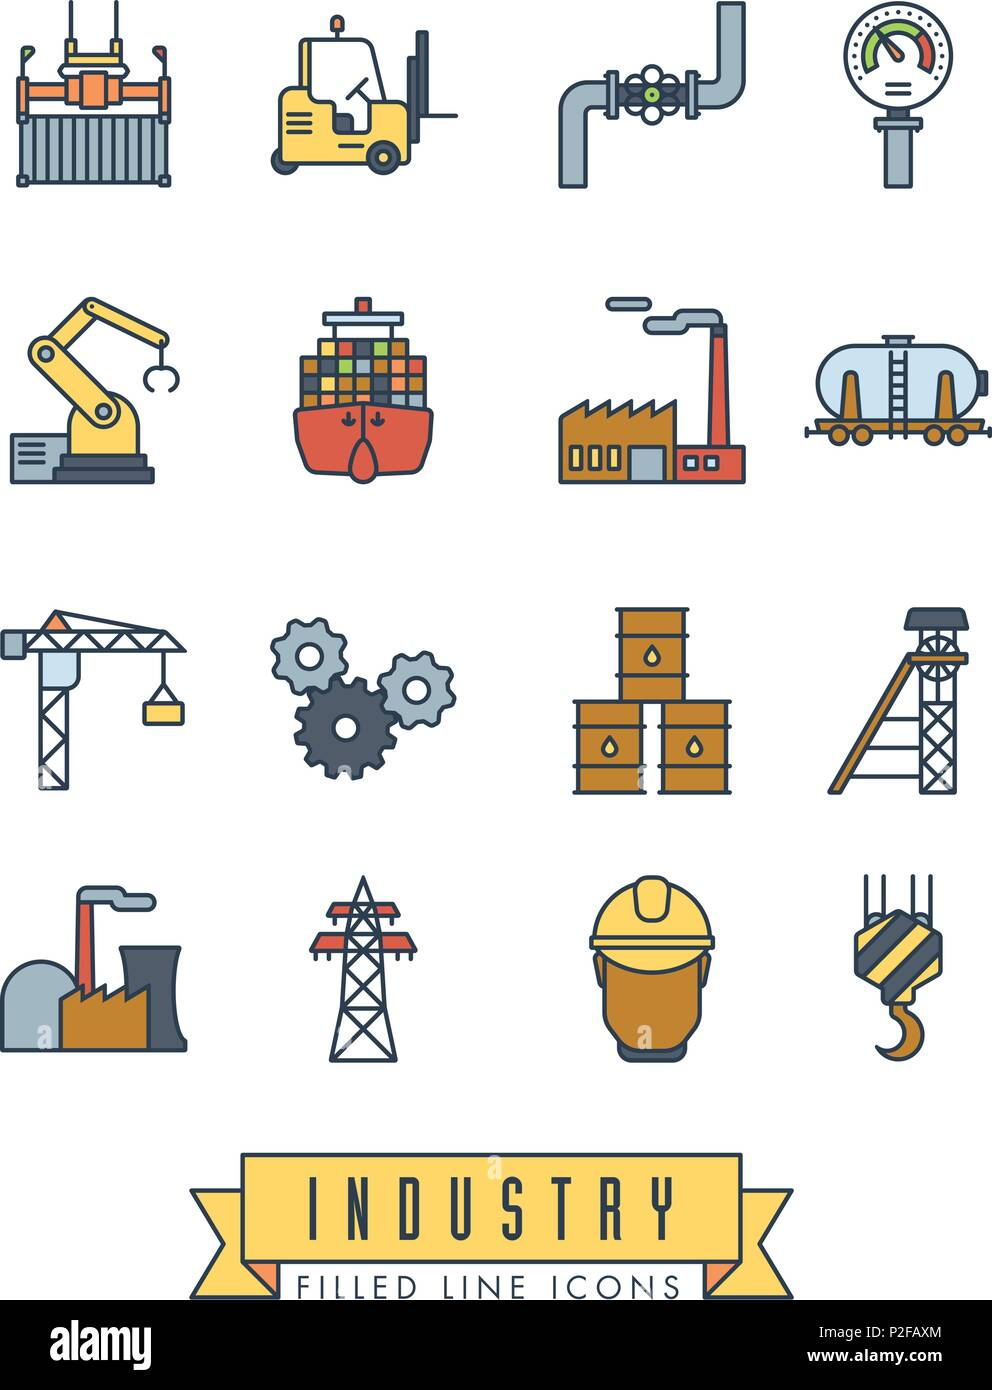 Collection of industry themed vector line icons with color fill - Stock Vector